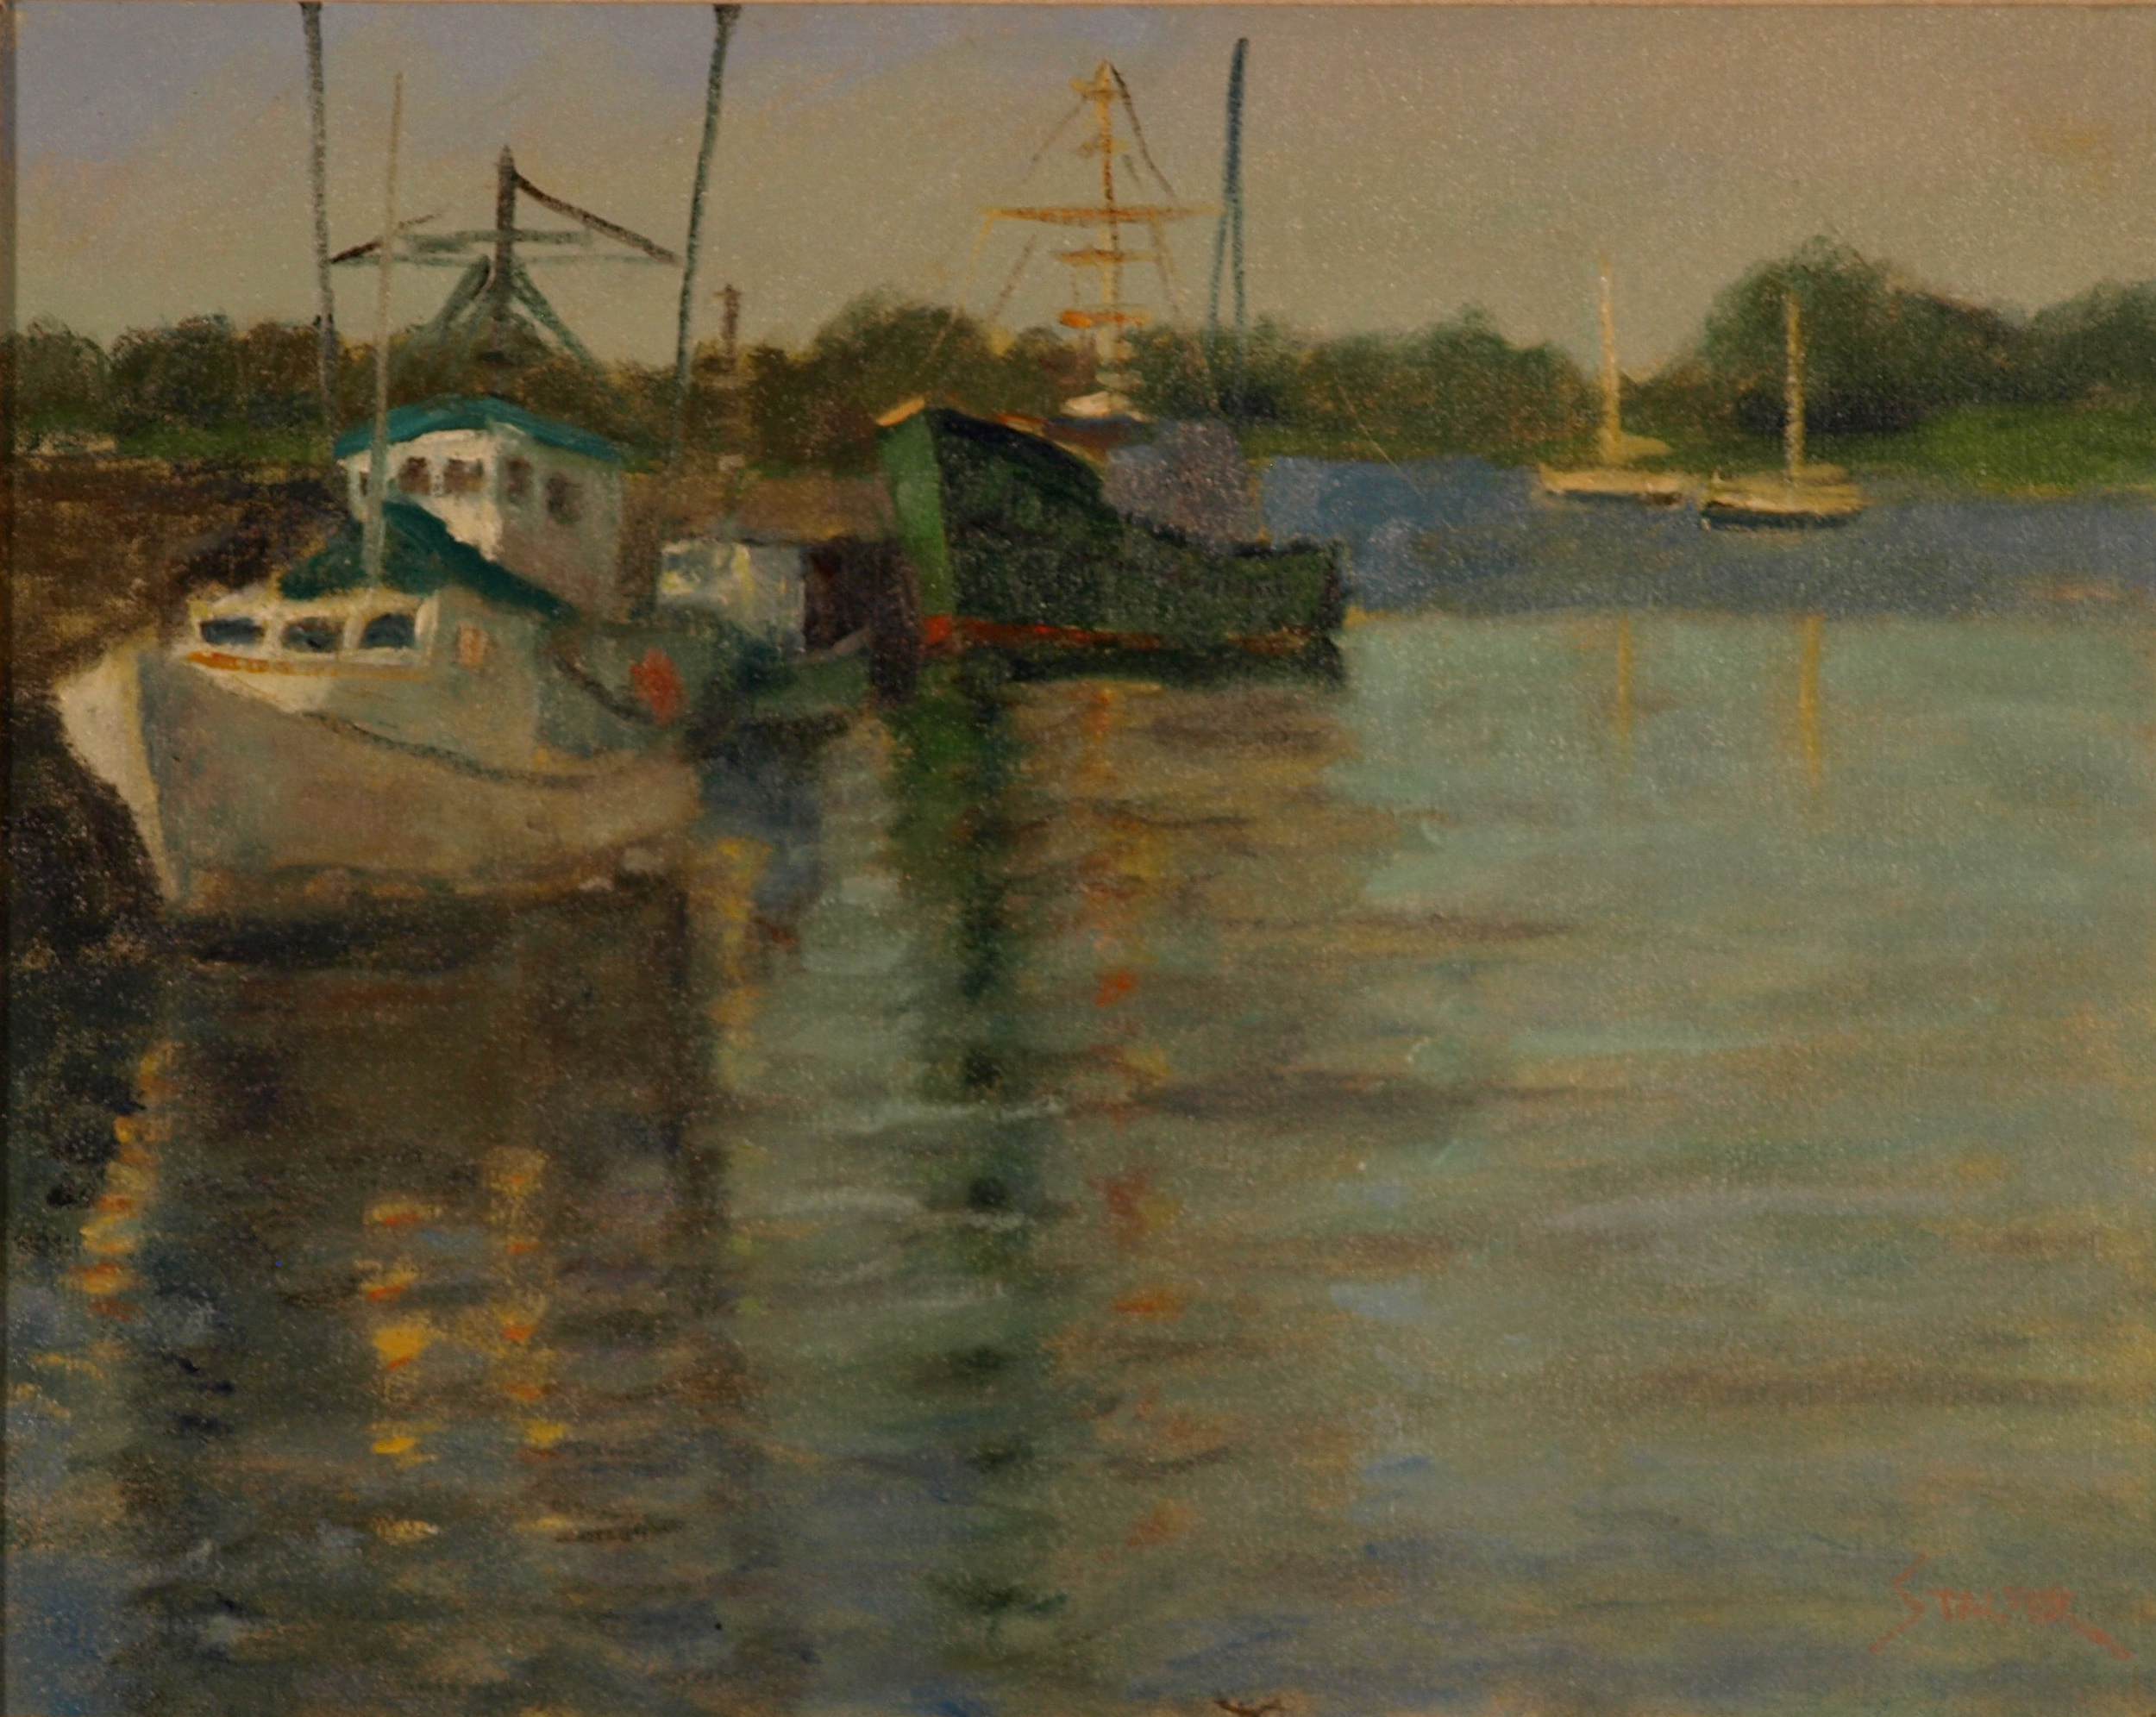 Harbor Reflections, Oil on Canvas, 16 x 20 Inches, by Richard Stalter, $450